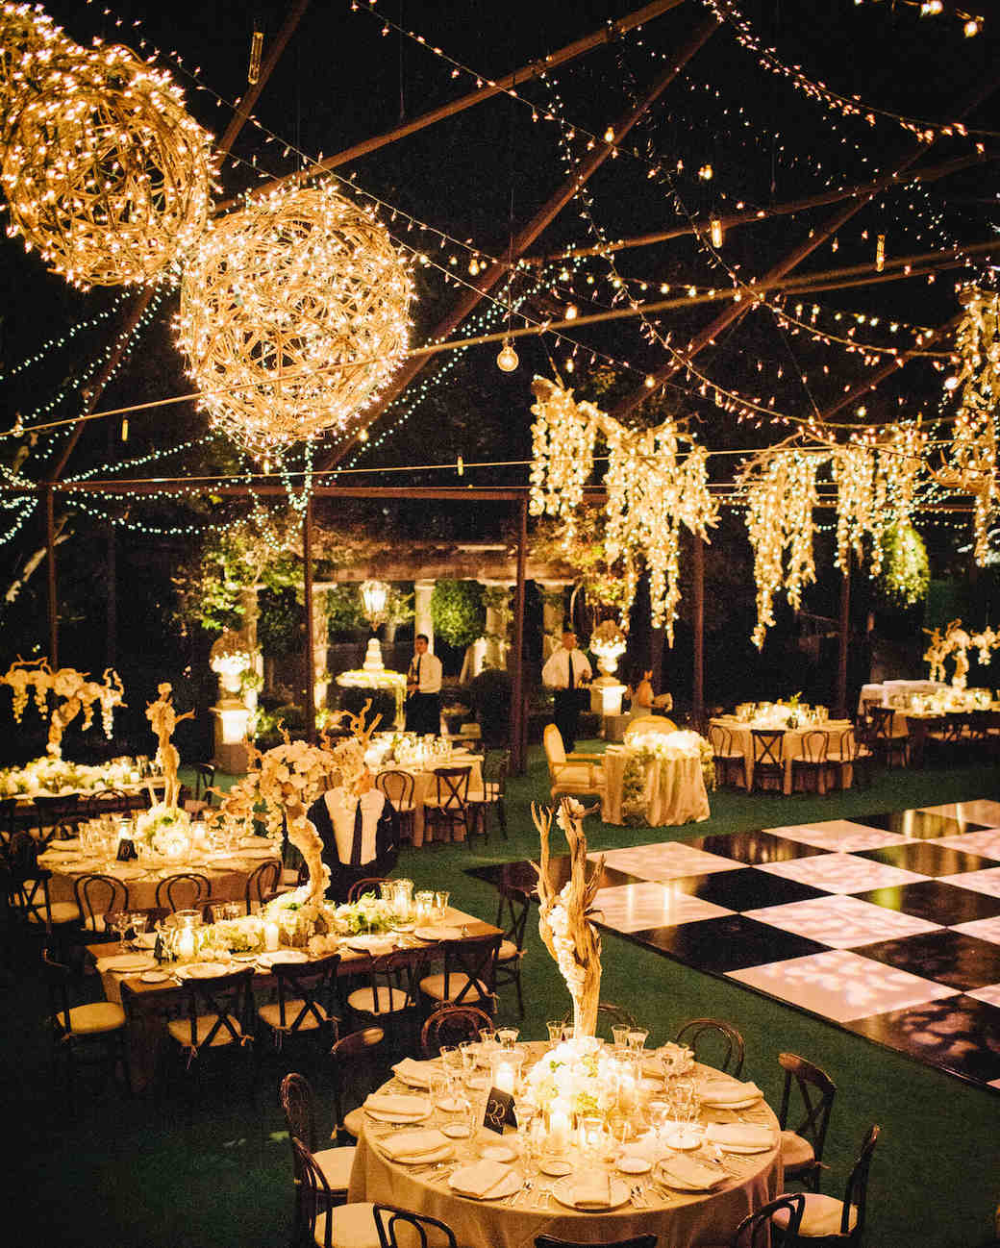 Outside Wedding Ideas With Garden Wedding Ideas On Outdoor Wedding Lighting Ideas From Real Celebrati In 2020 Wedding Lights Outdoor Wedding Lighting Romantic Backyard